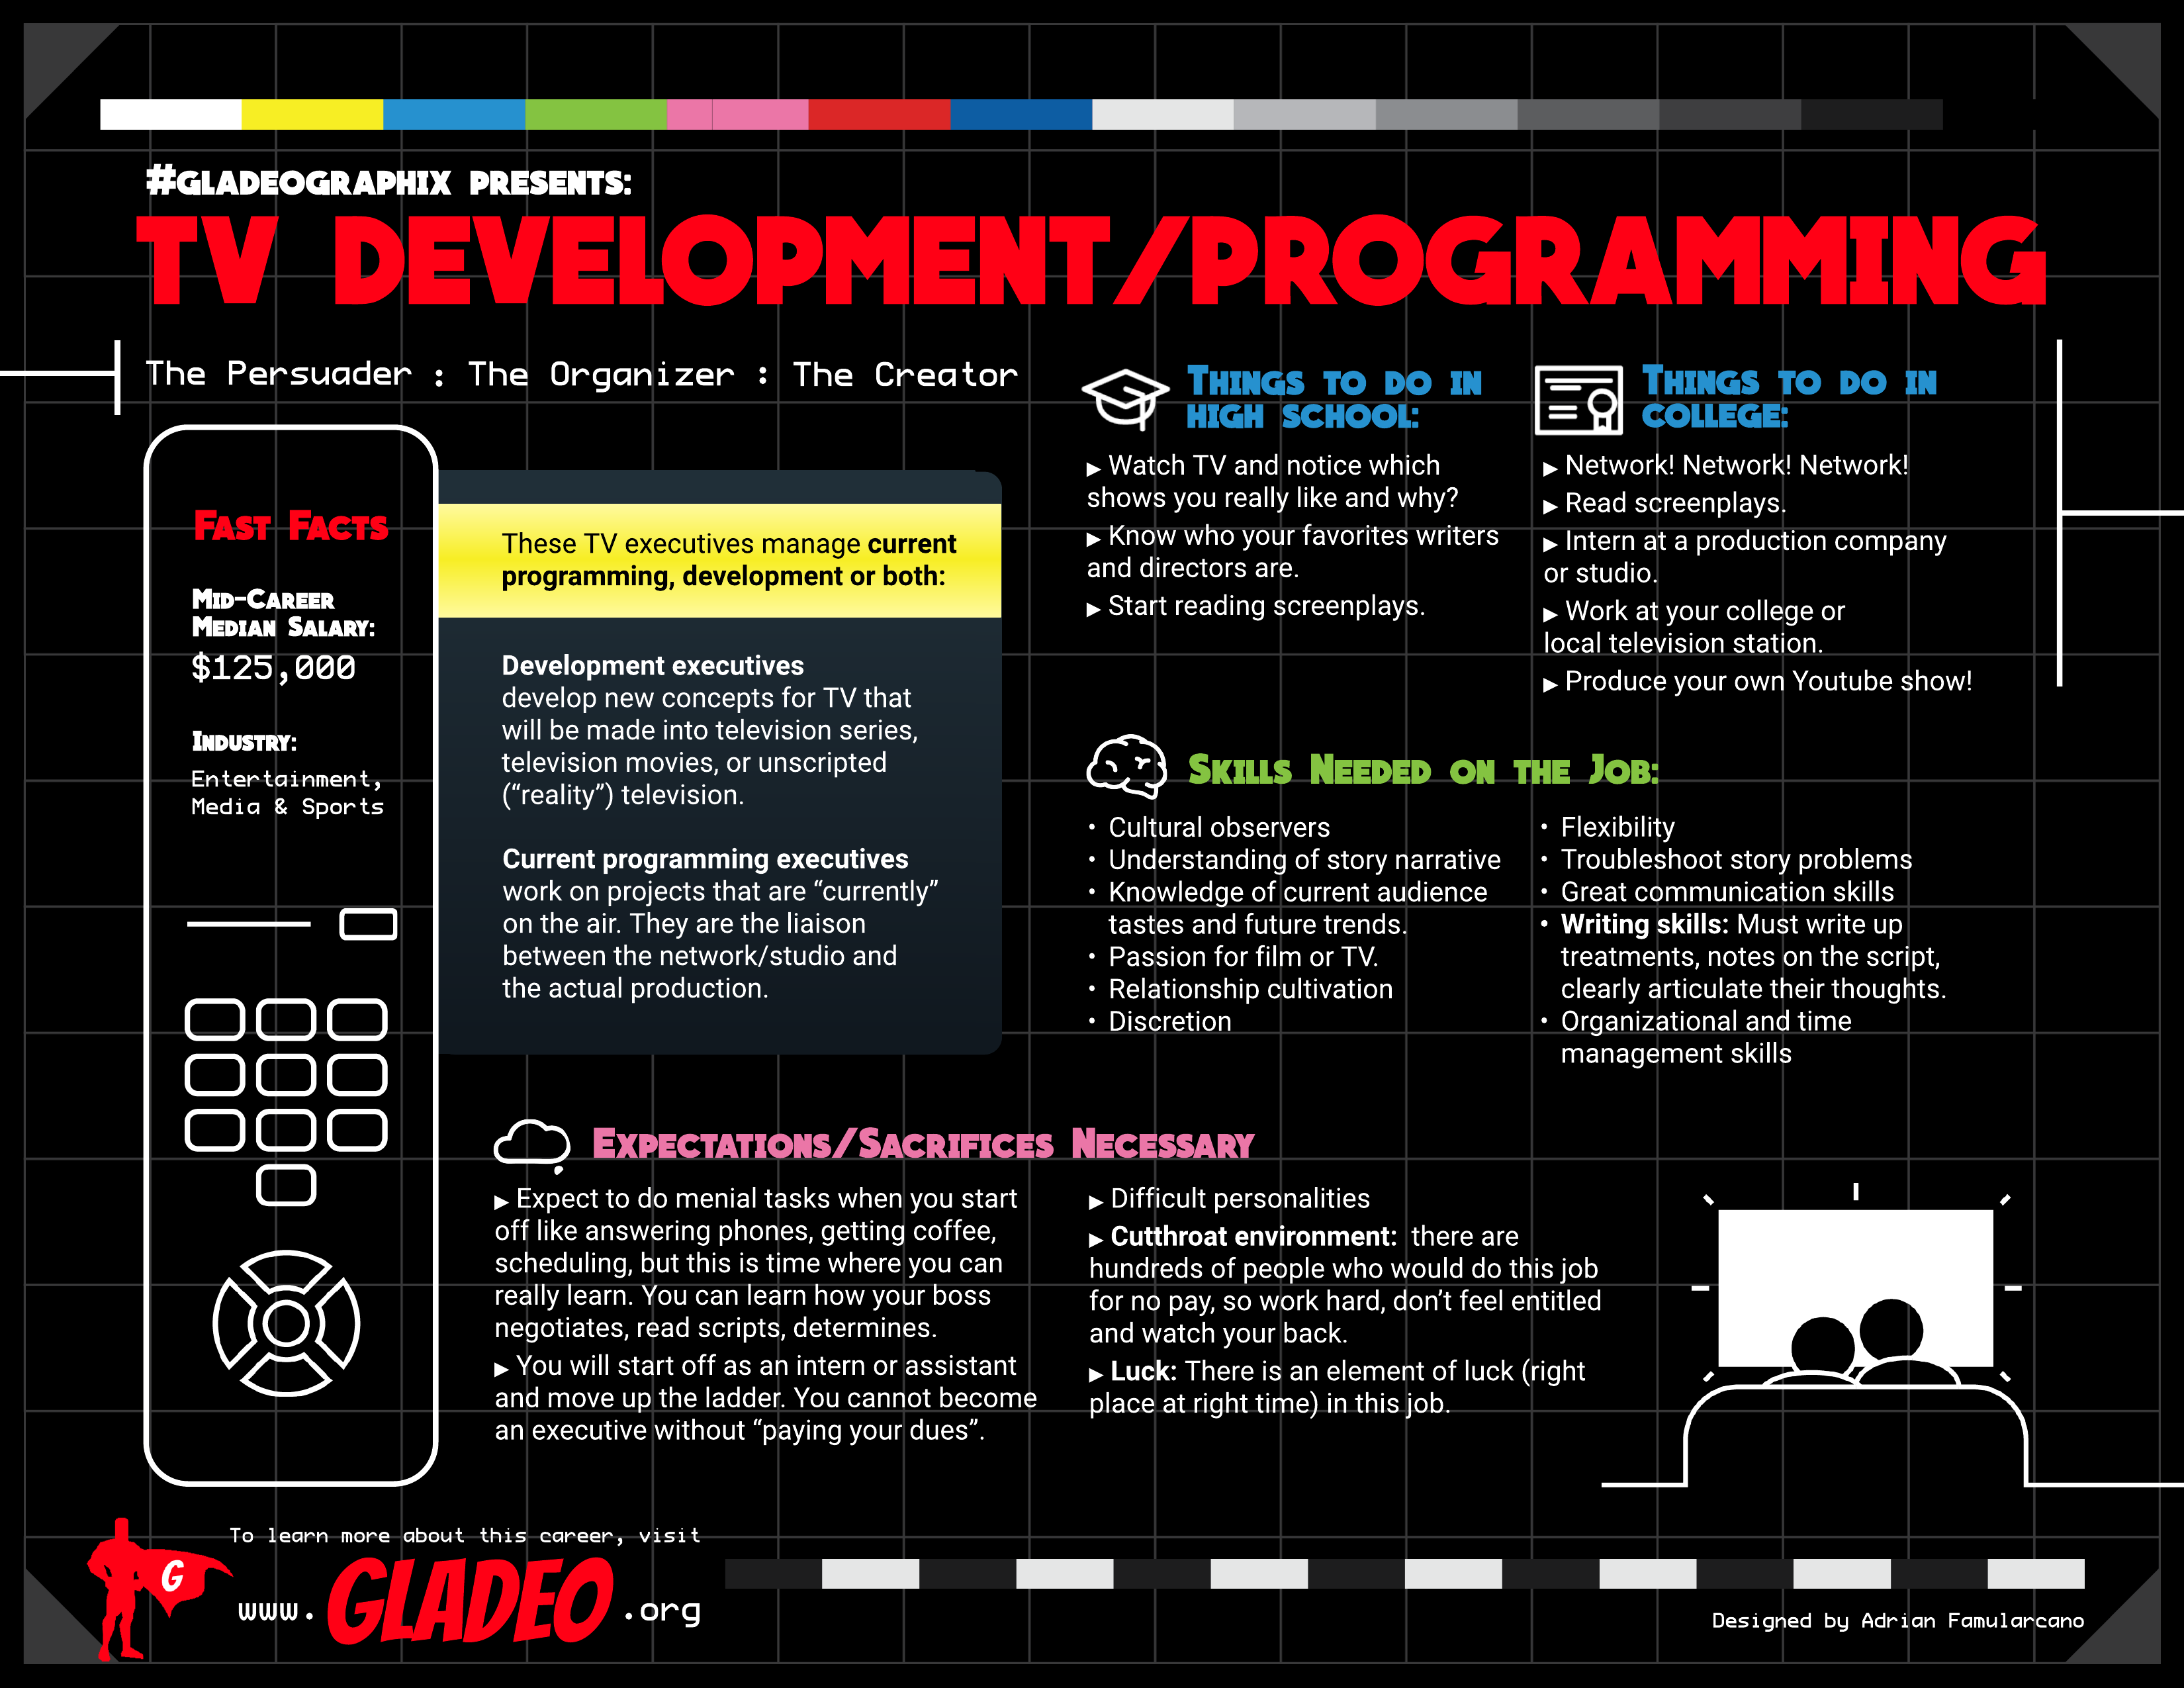 Gladeographix TV Development and Programming